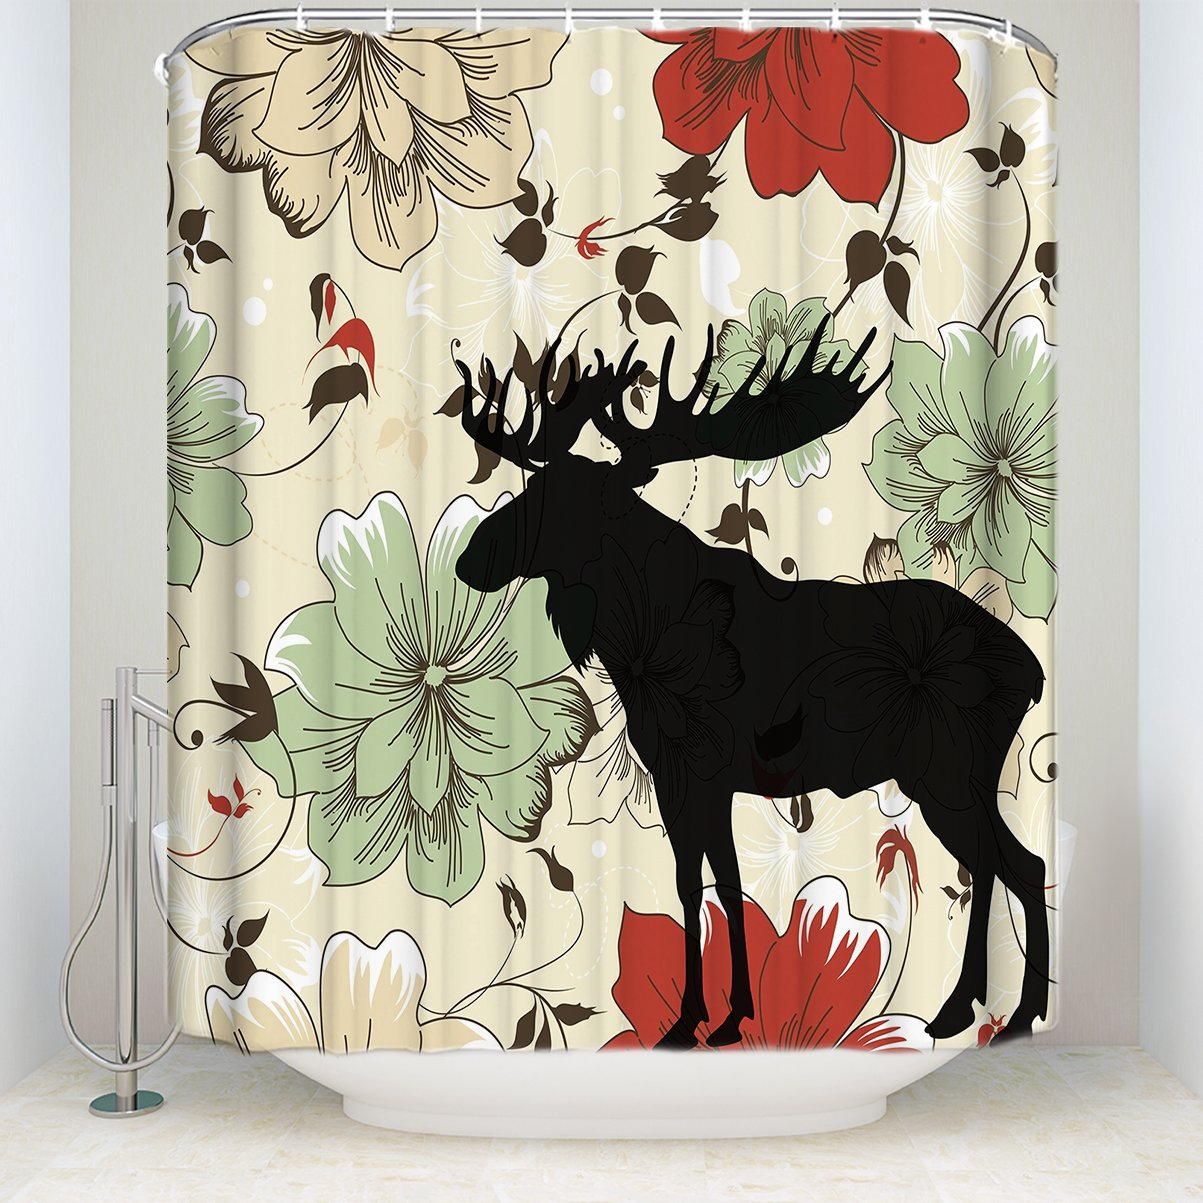 YEHO Art Gallery Shower Curtain Colorful Fresh Flowers with Elk Pattern Funny Soft Comfort Shower Curtain with Hooks 36x72 inches